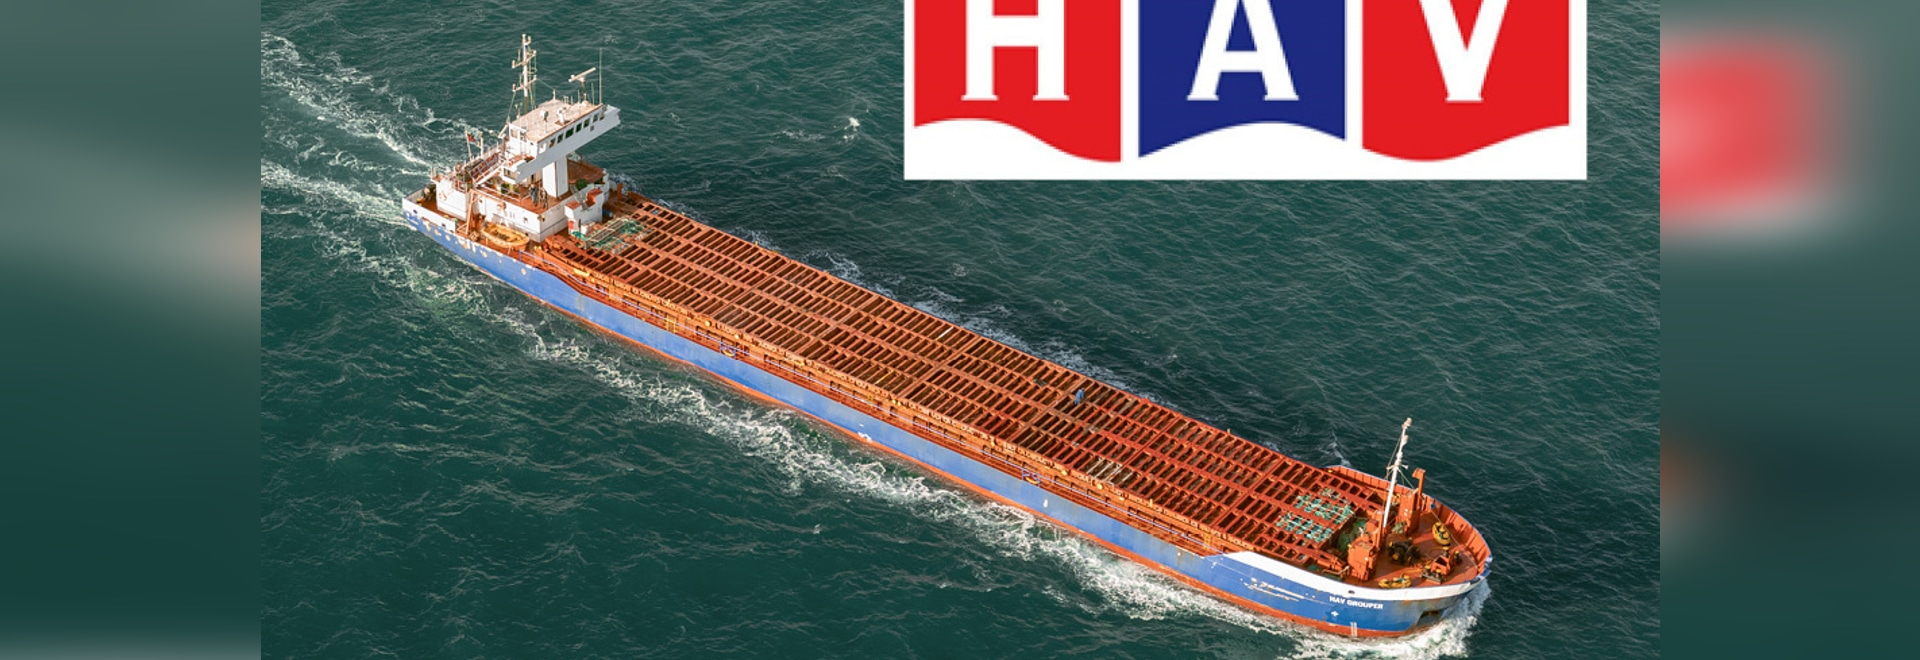 17 Hav Bulkers to be equipped with the CompactClean BWMS